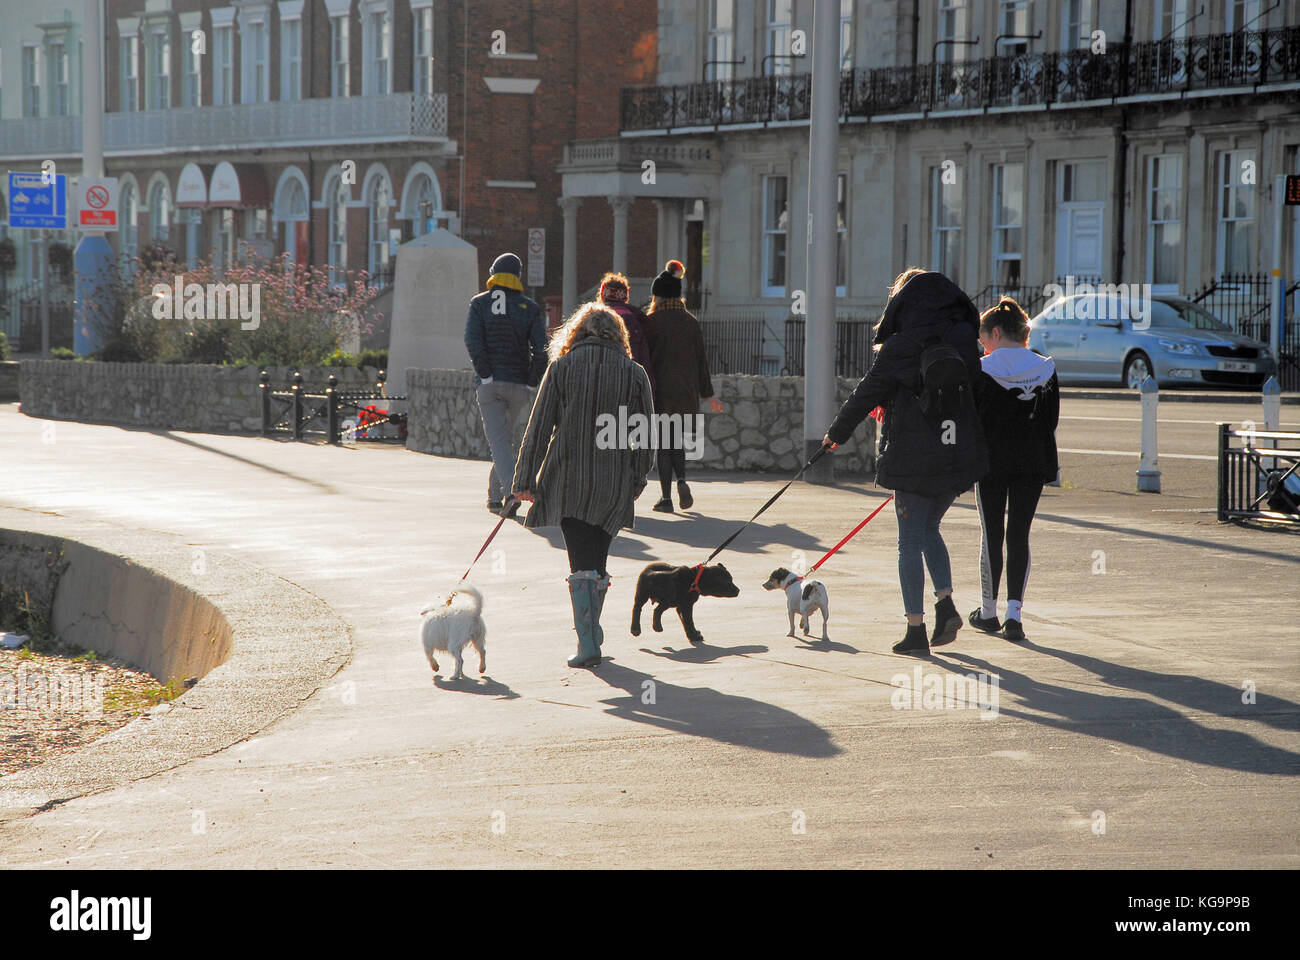 Weymouth, Dorset. 5th November 2017 - People wrap up warm and make the most of a gorgeous autumn day by walking - Stock Image